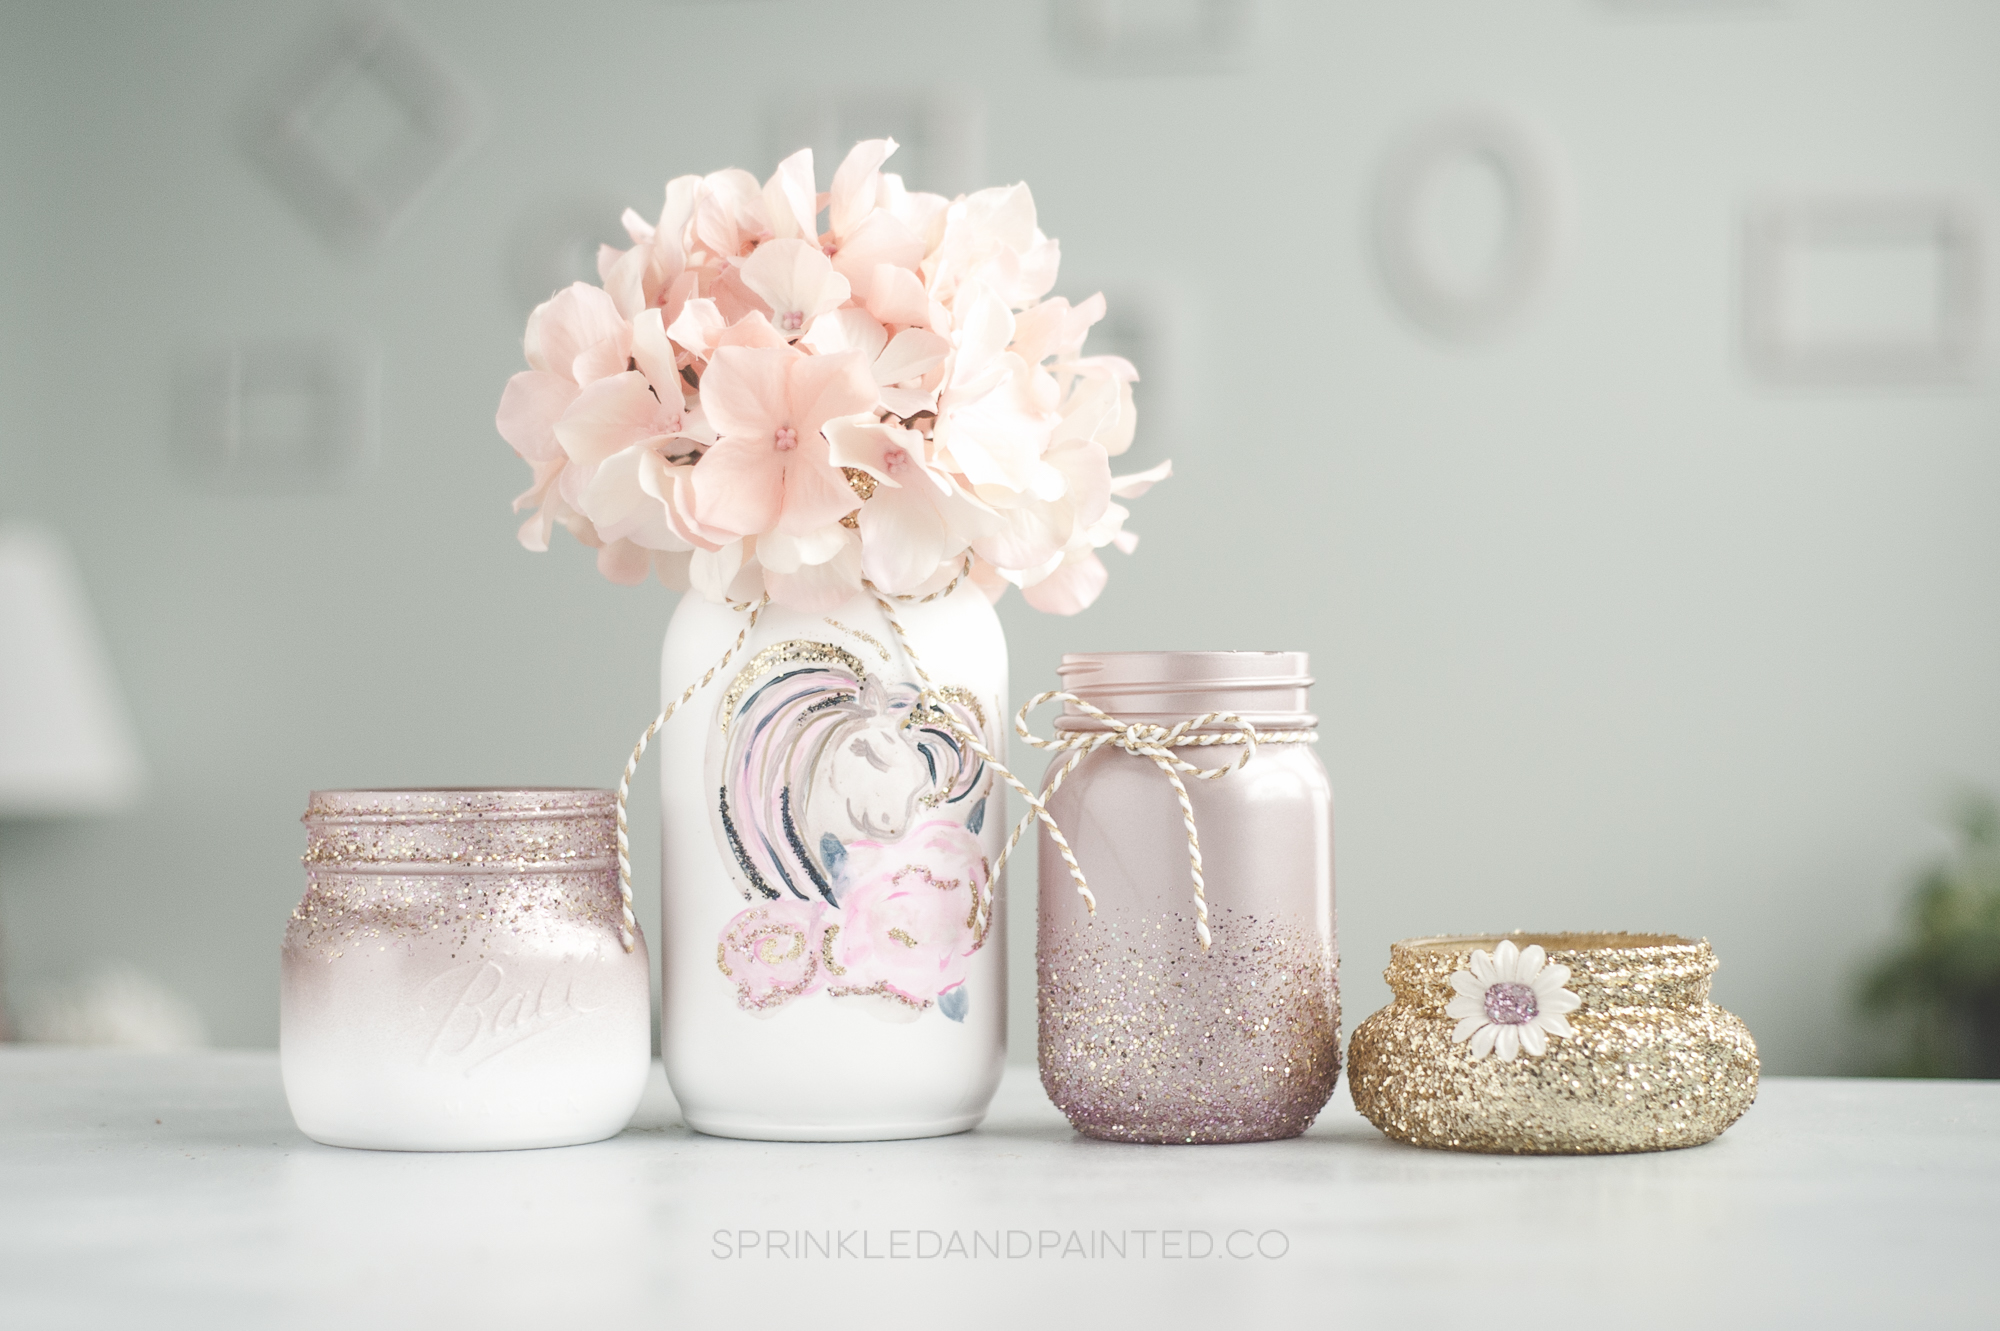 Inspiration Mason Jar sets